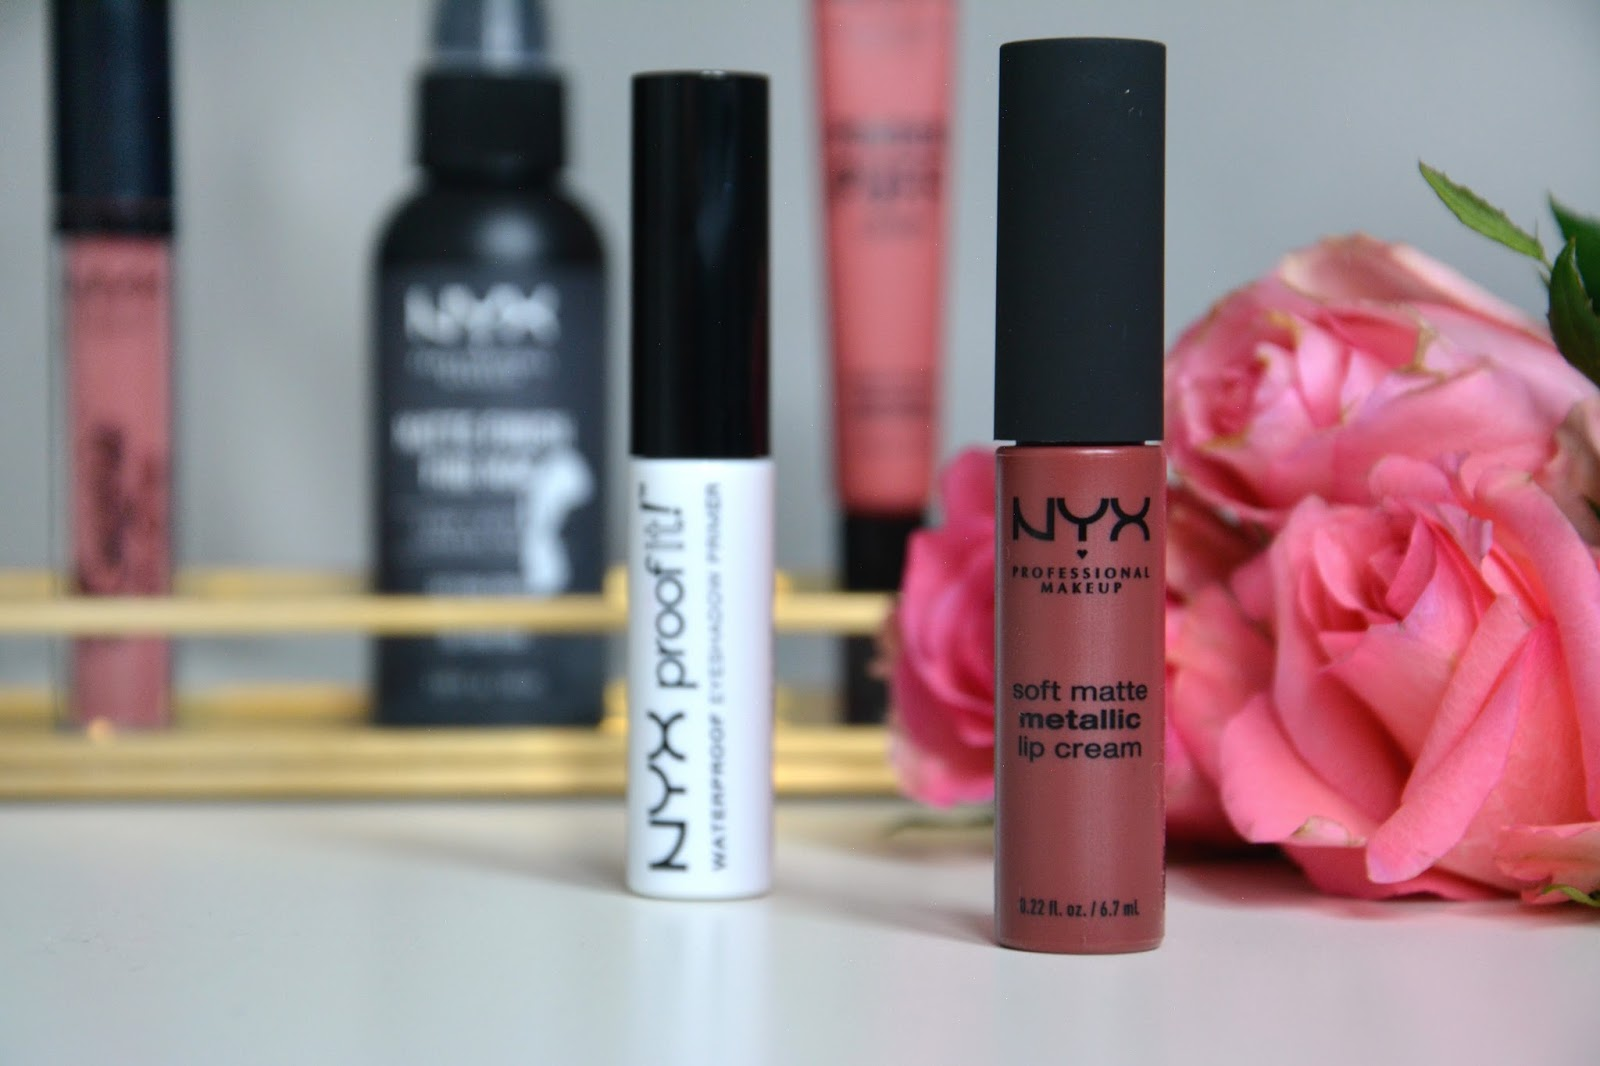 NYX Powder Puff Lippie; Squad Goals; NYX Matte Finish Long Lasting Setting Spray; NYX Lid Lingerie Matte Eye Tint; Lidli; NYX Proof It! Waterproof Eyeshadow Primer; NYX Soft Matte Metallic Lip Cream; Rome